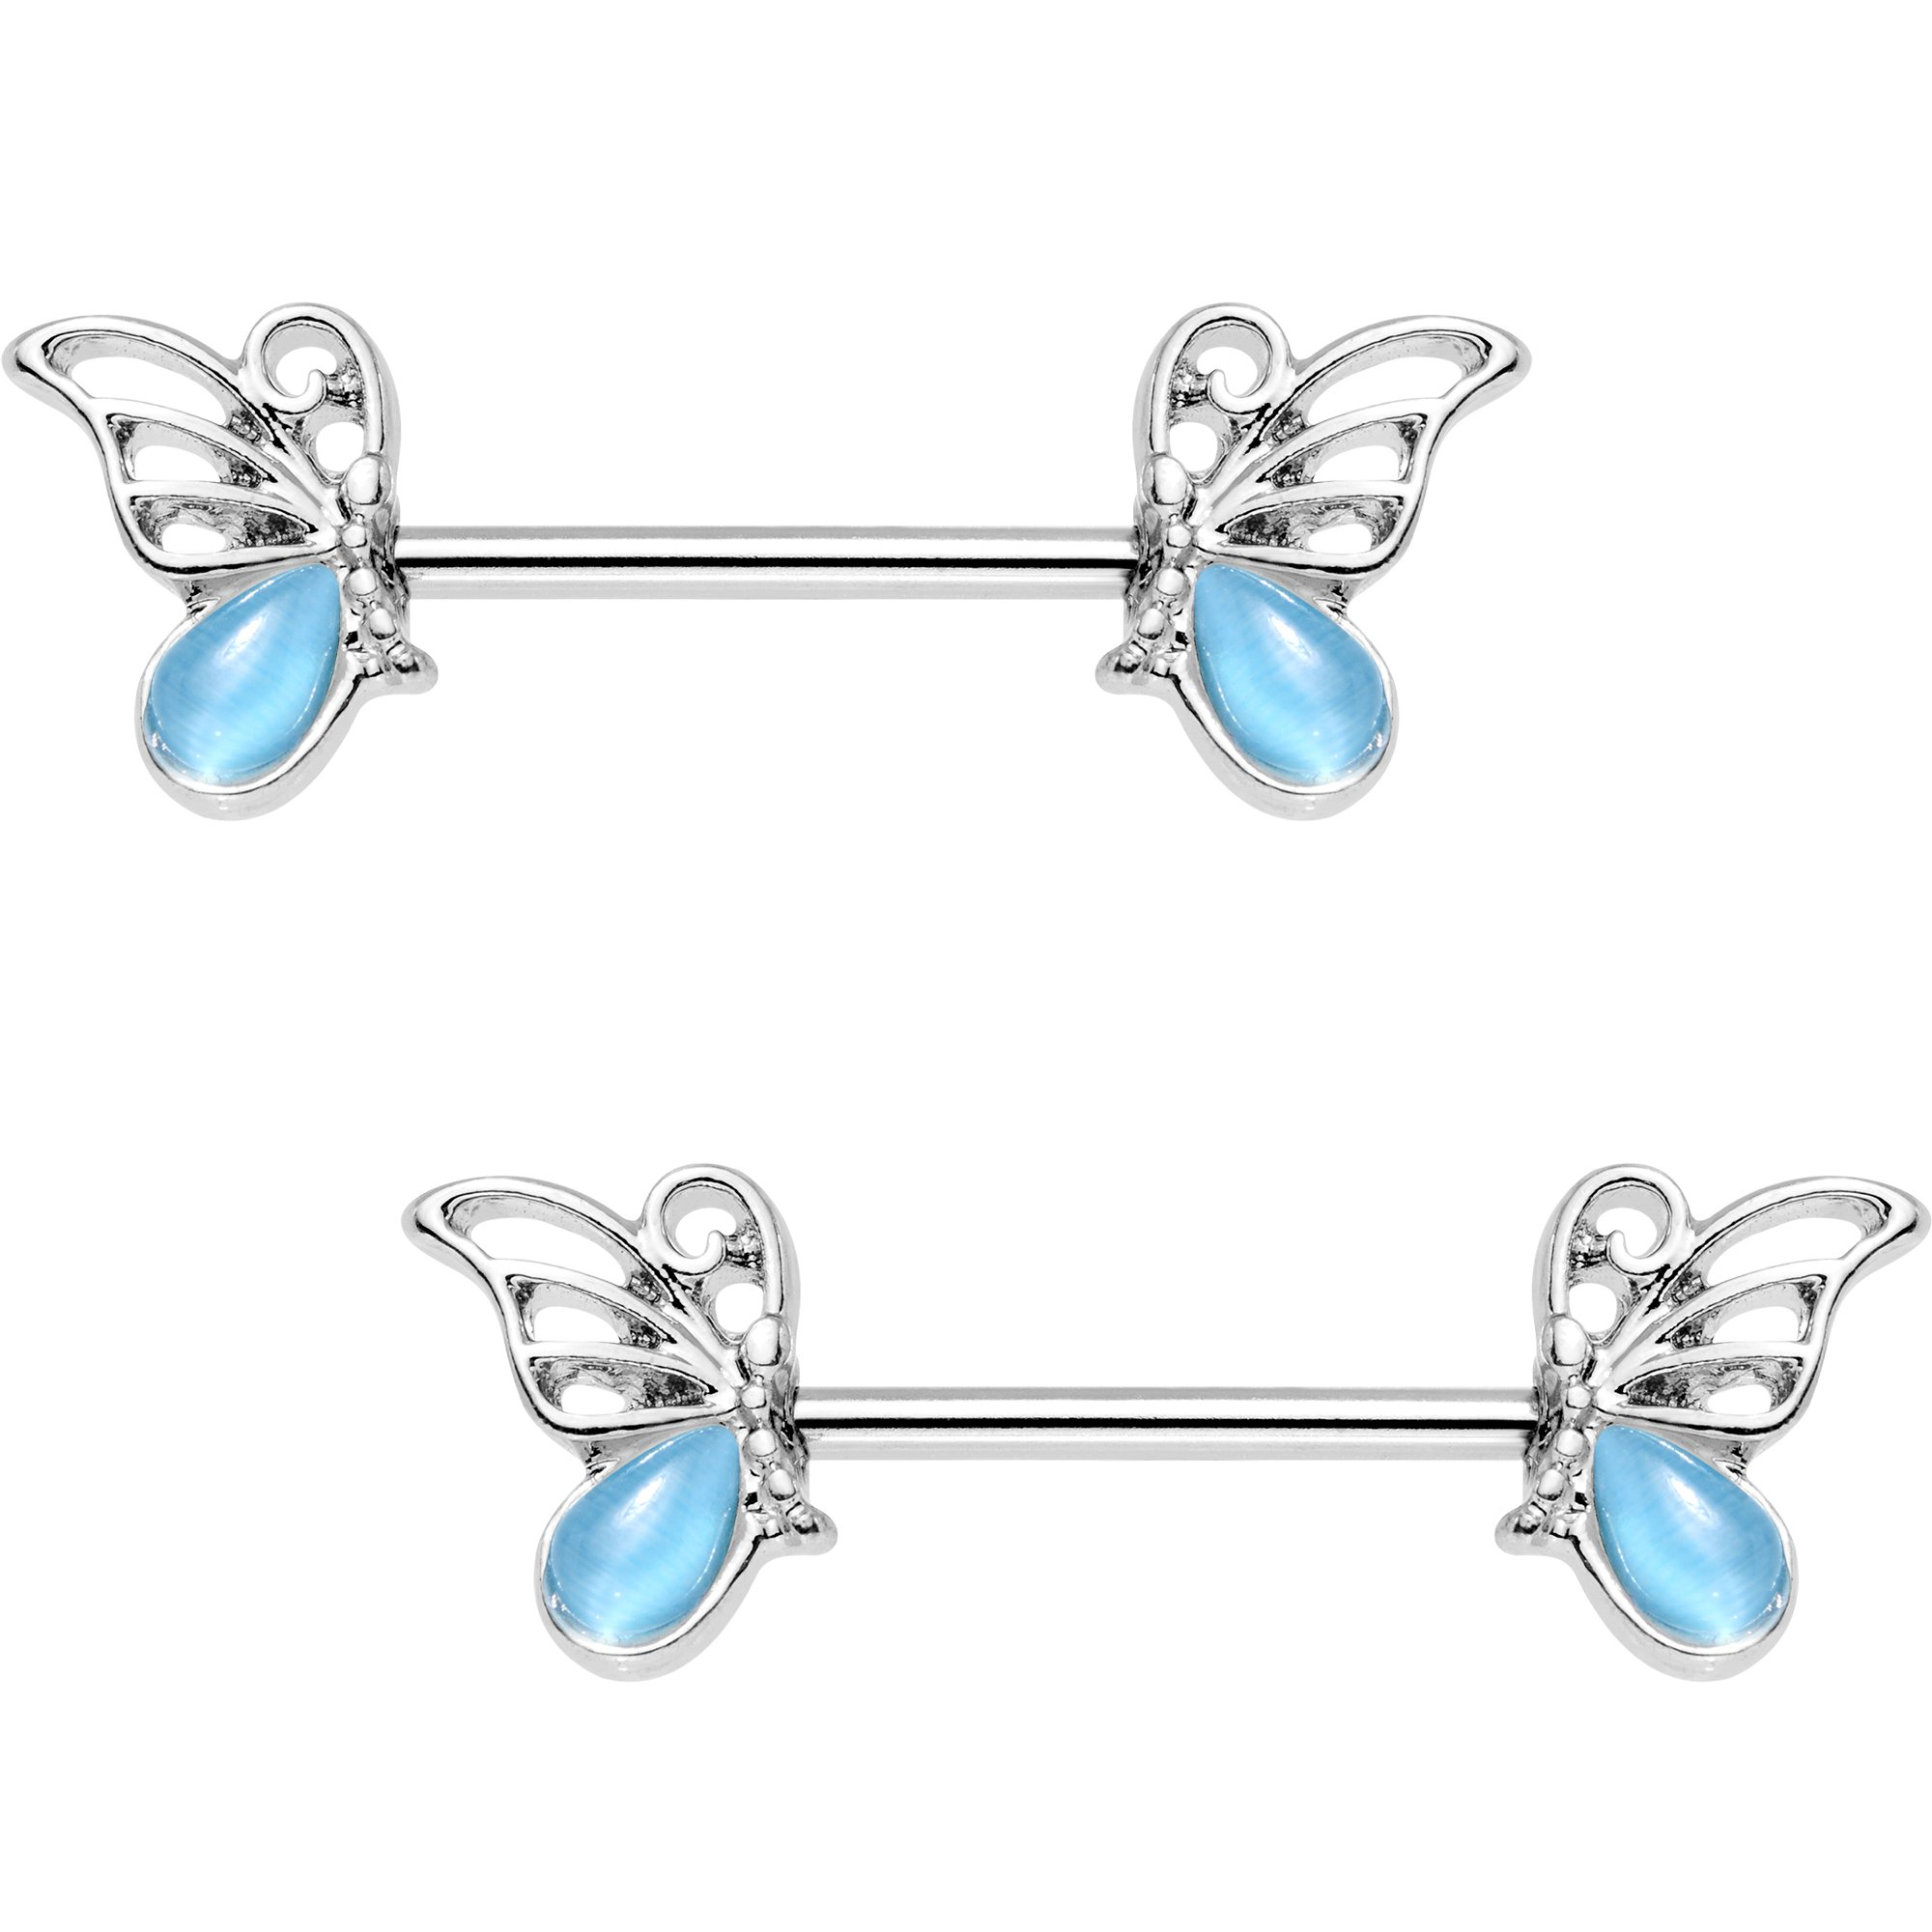 Body Candy Steel Brilliant Blue Accent Butterfly Frame Barbell Nipple Ring Set of 2 14 Gauge 15mm